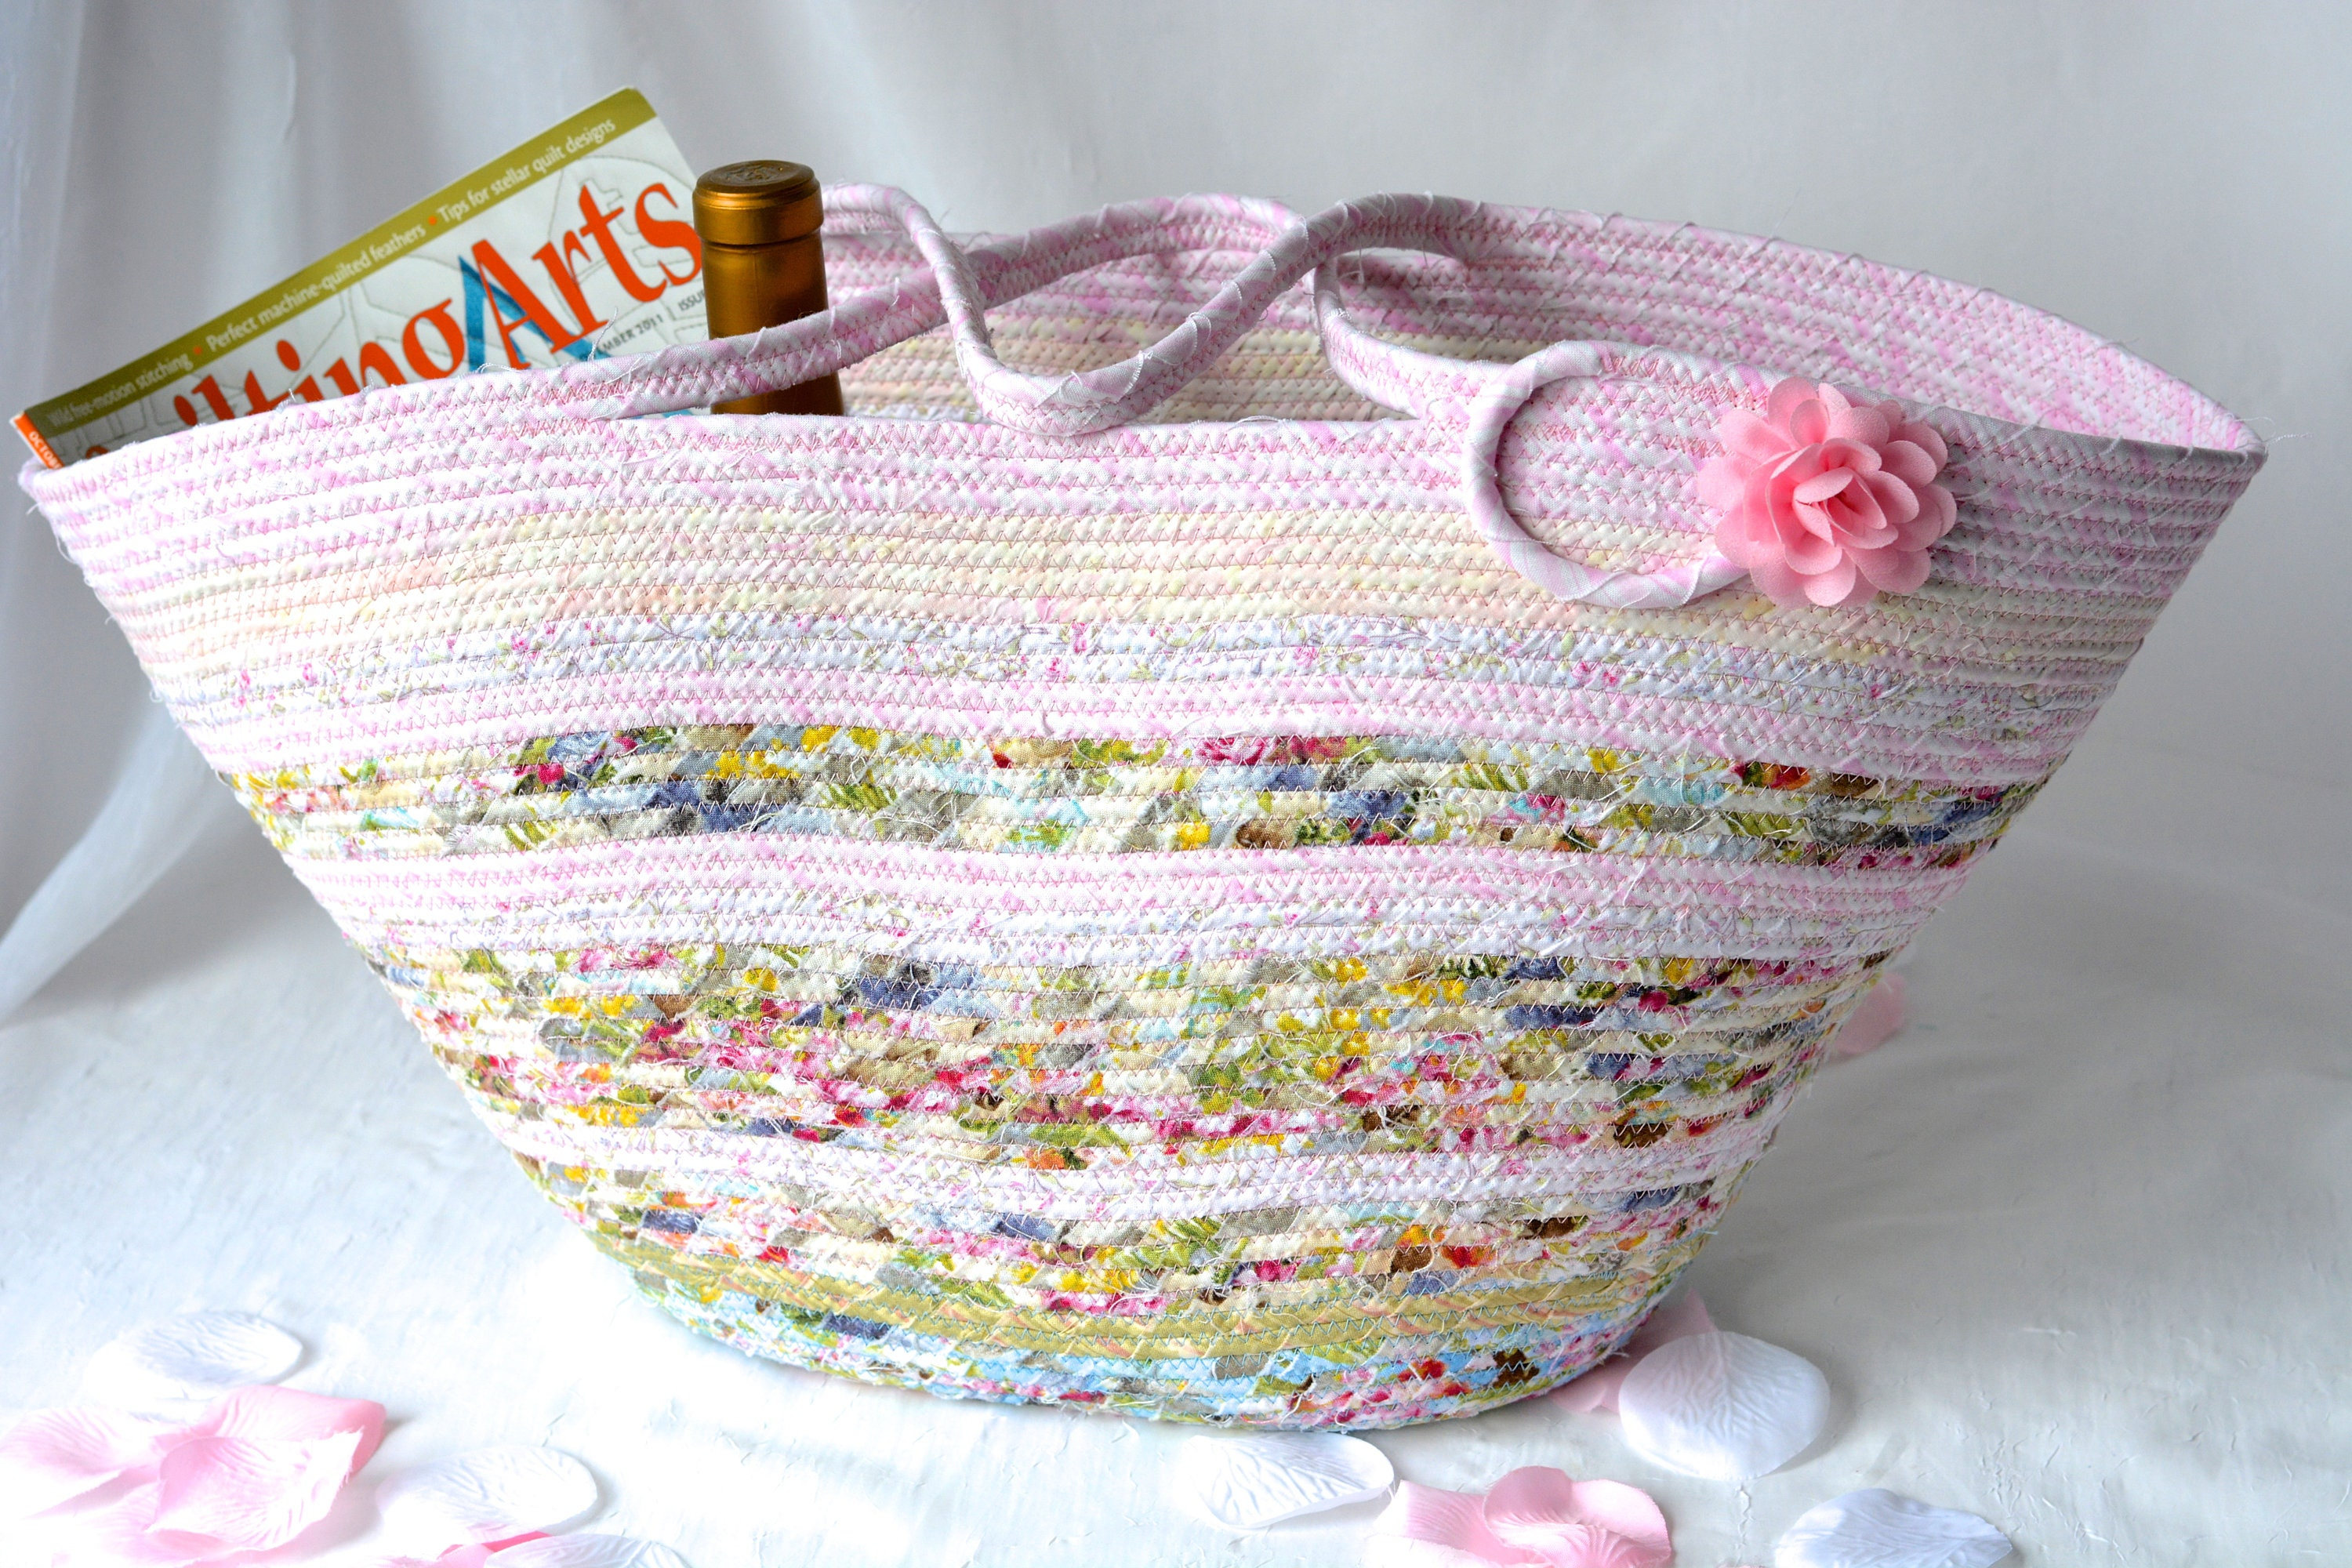 Handmade Quilted Basket Decorative Pink Floral Beach Bag Shabby Chic Tote Bag Handled Picnic  Basket Baby Shower Gift